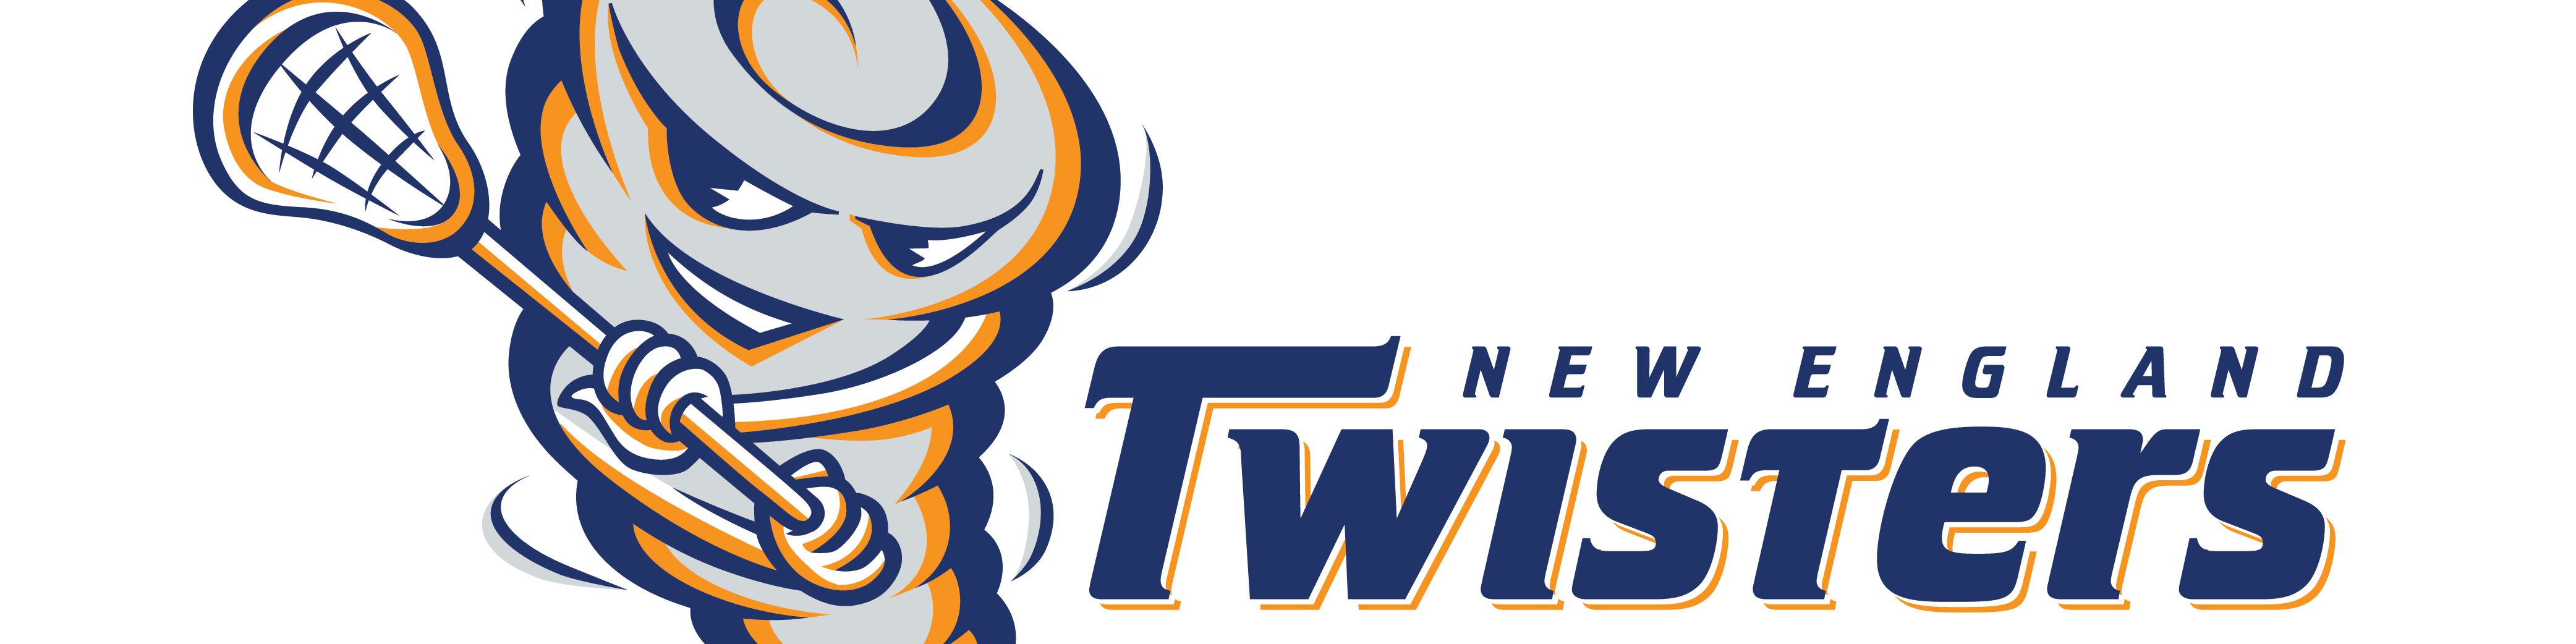 New England Twisters, Lacrosse, Goal, Field